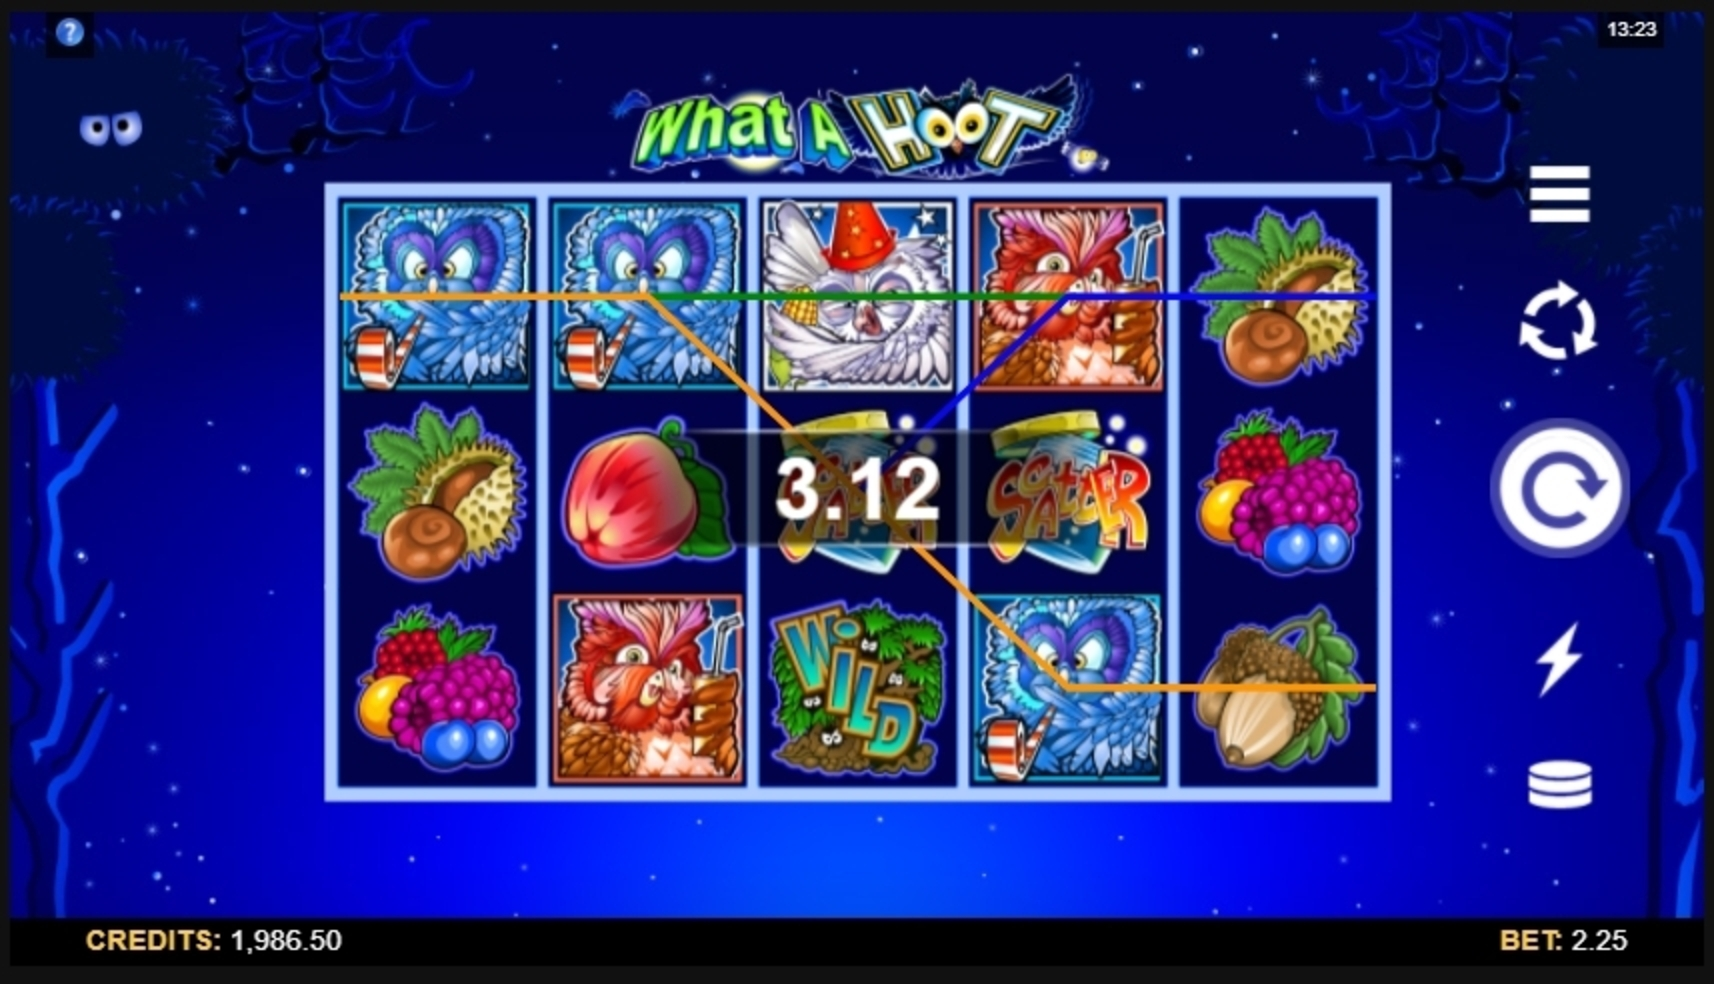 Win Money in What a Hoot Free Slot Game by Microgaming